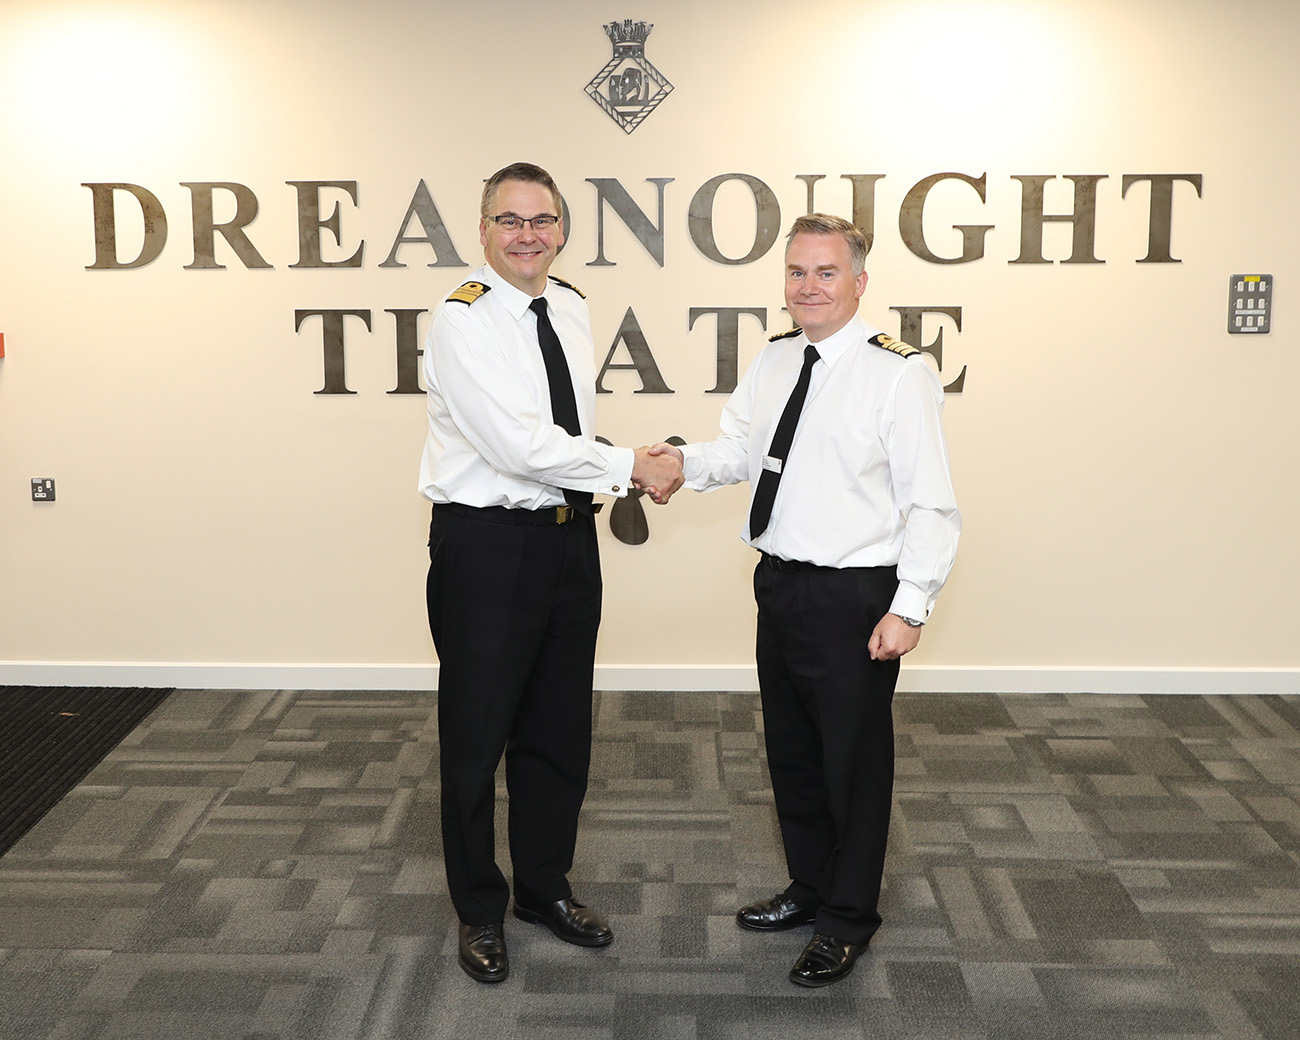 CNEO opens new Dreadnought Theatre